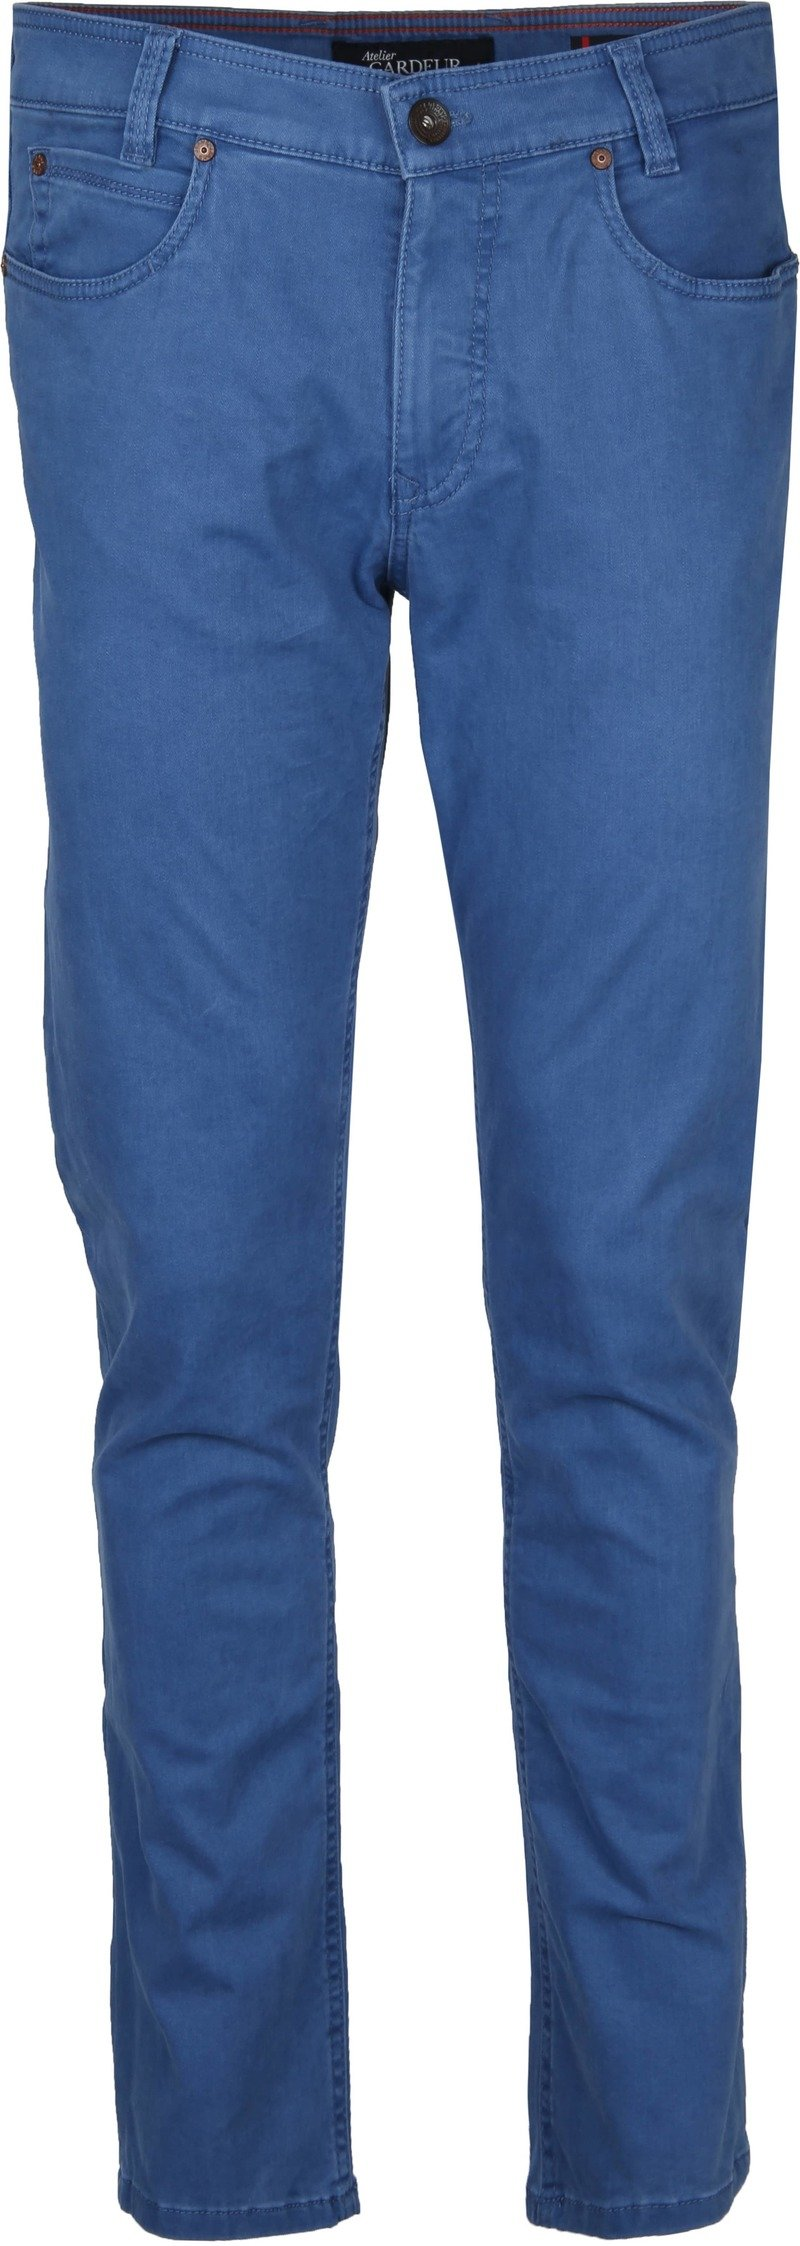 Gardeur Batu Pants Blue photo 0